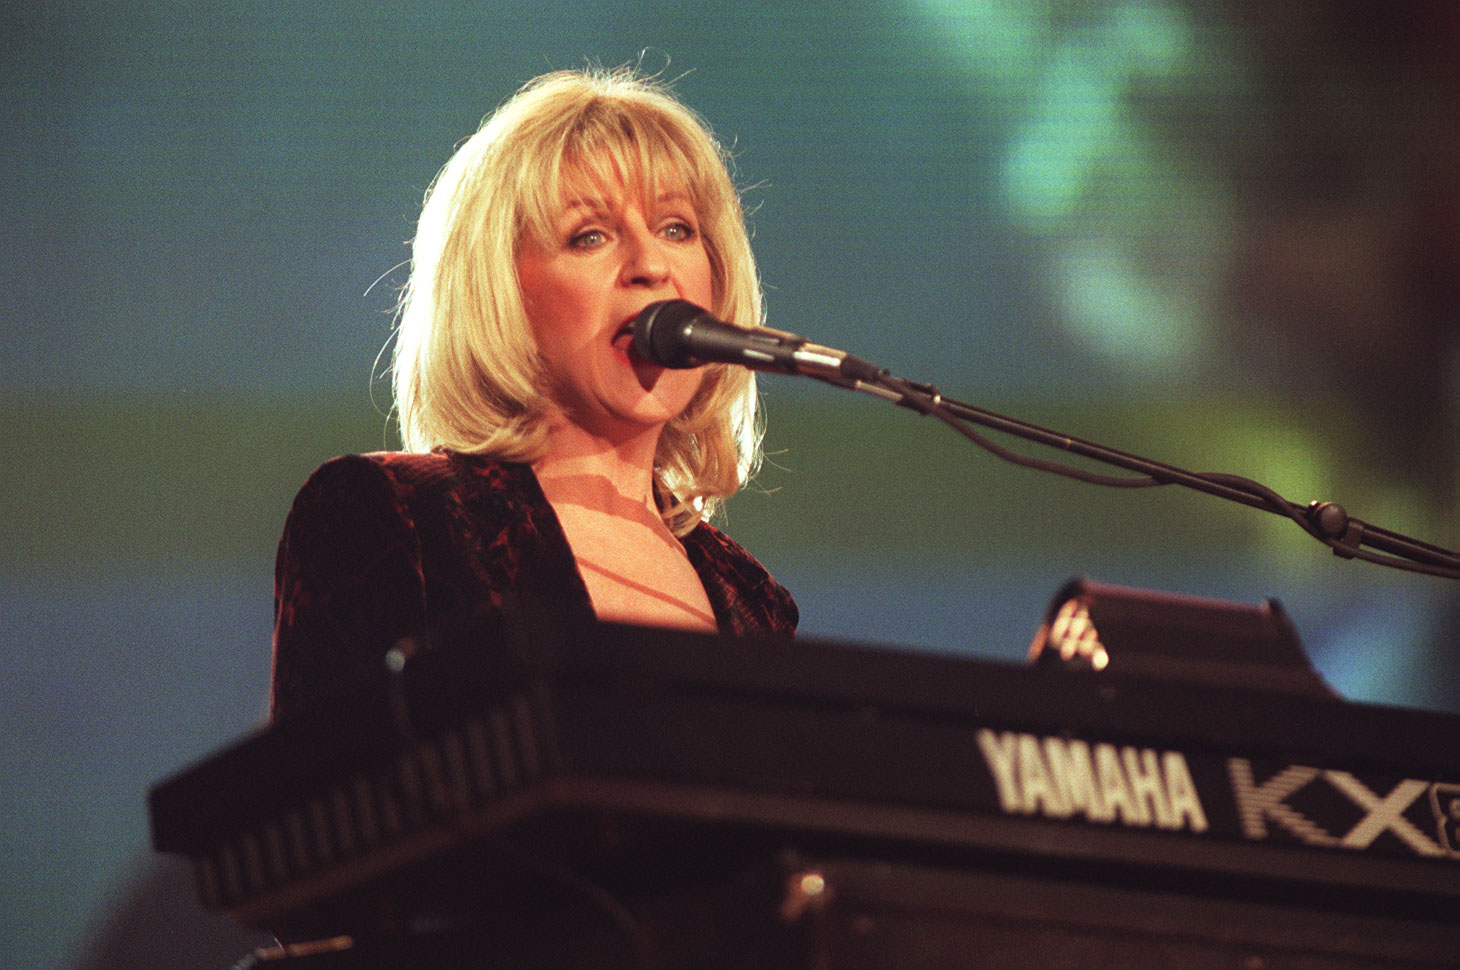 christine mcvie 39 i 39 ve rejoined fleetwood mac we 39 re writing an album 39. Black Bedroom Furniture Sets. Home Design Ideas